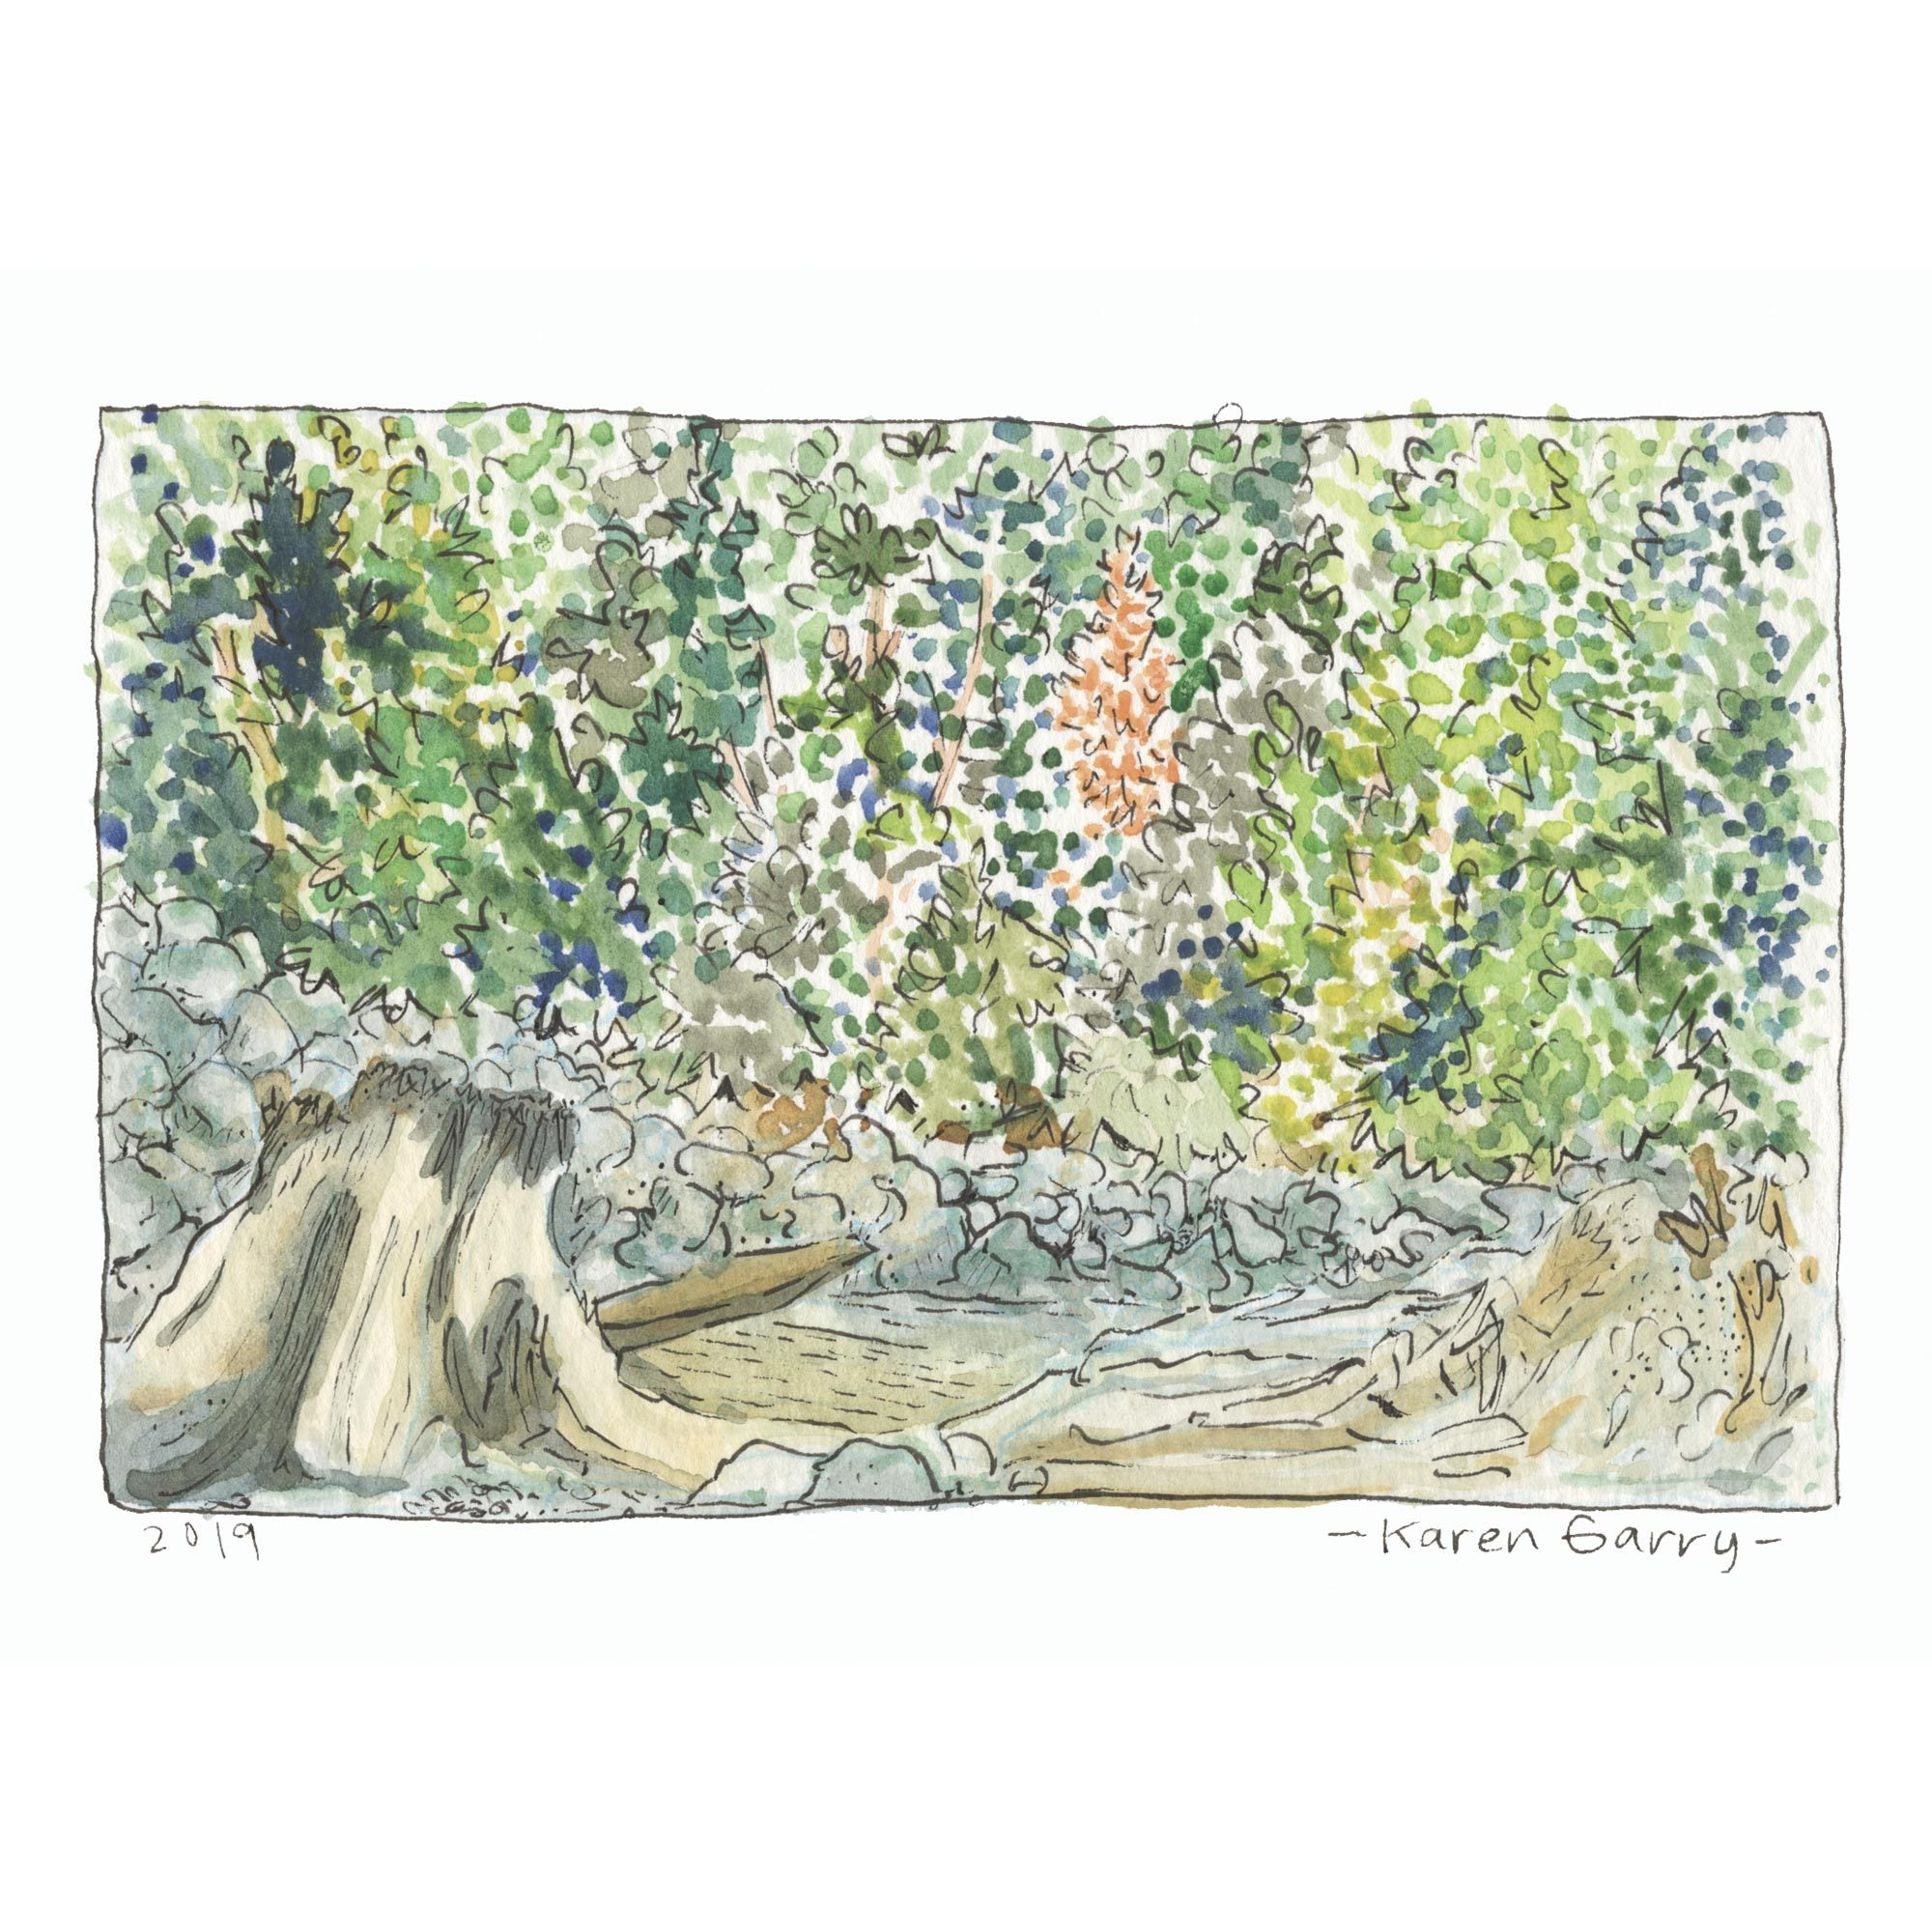 Hand painted postcard of driftwood and forest by the beach.